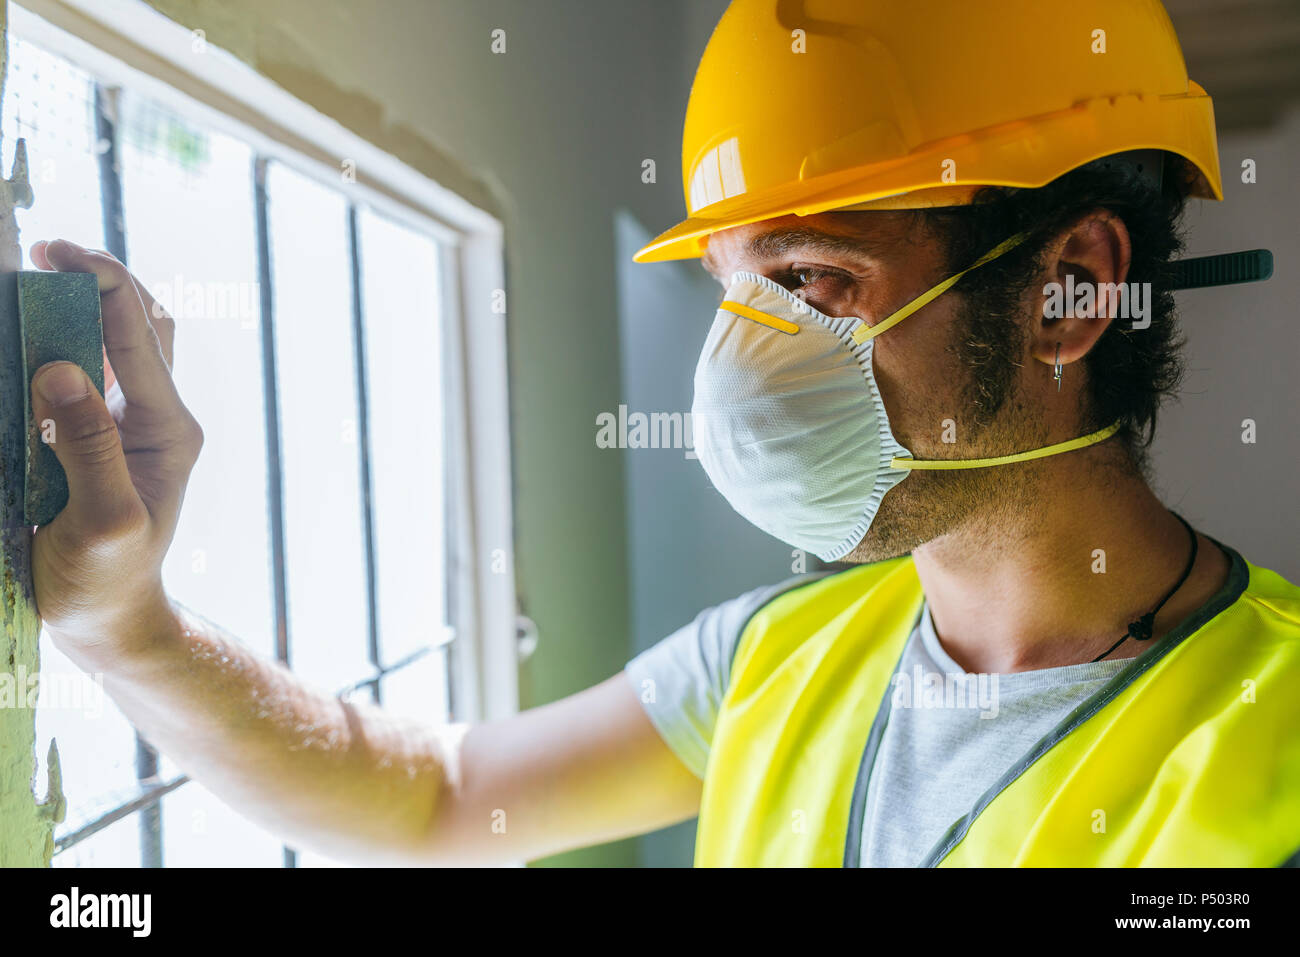 Close-up of worker sanding wooden window - Stock Image